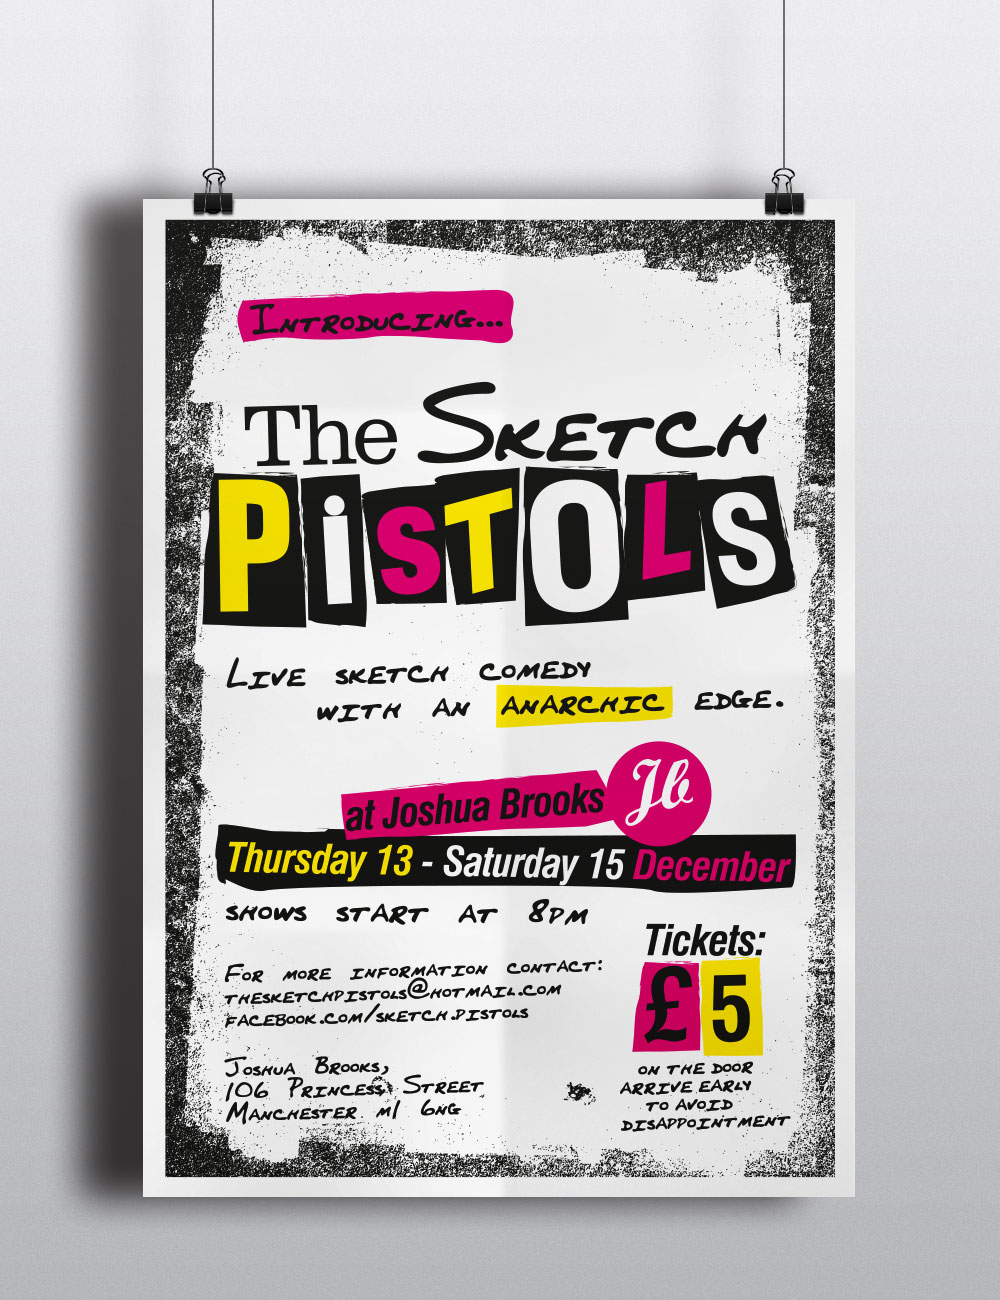 The Sketch Pistols